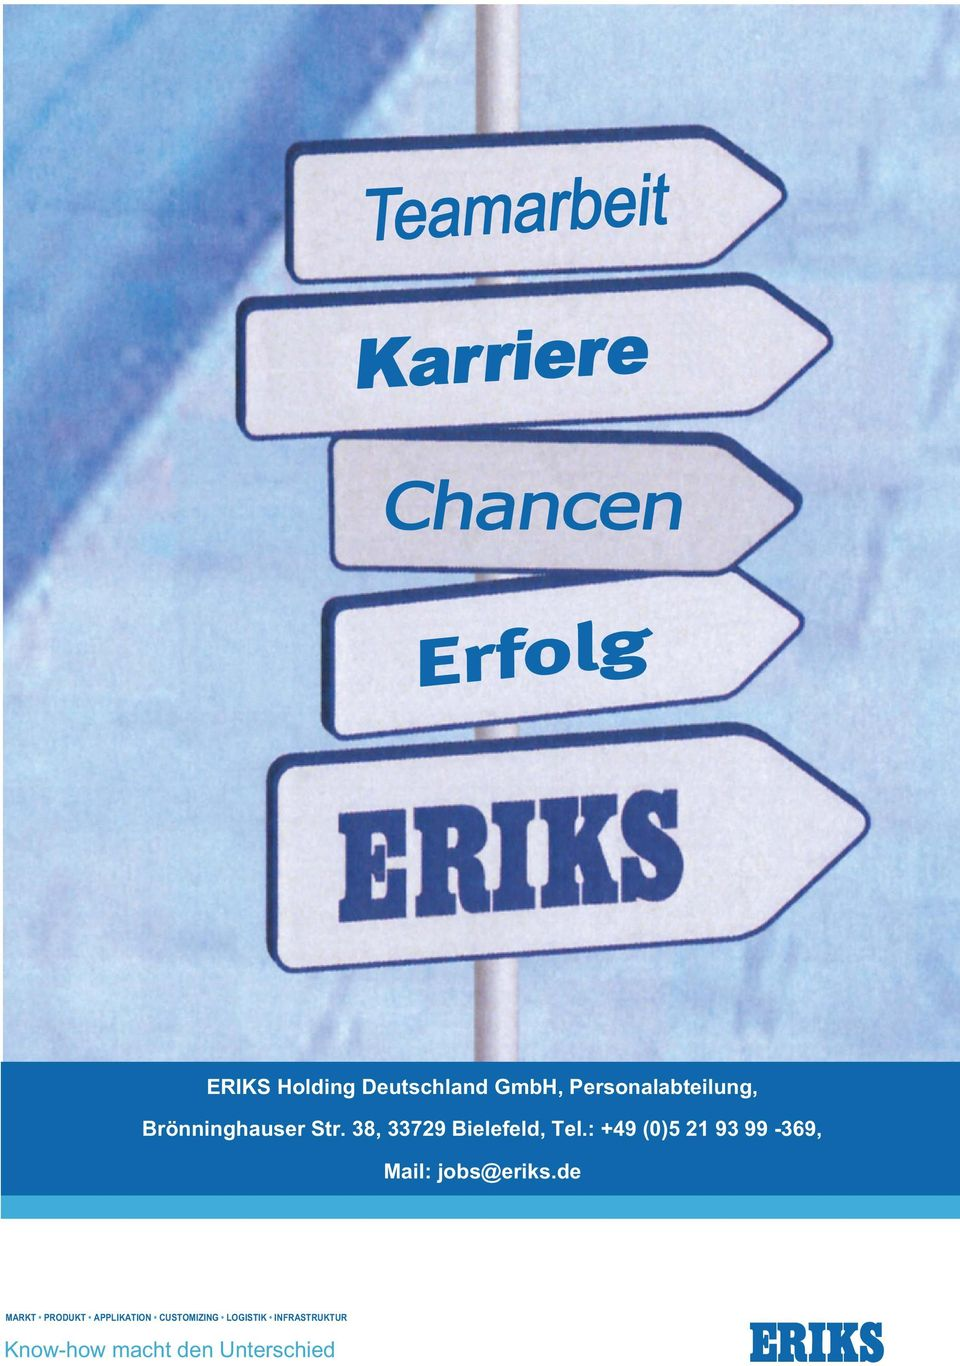 : +49 (0)5 21 93 99-369, Mail: jobs@eriks.